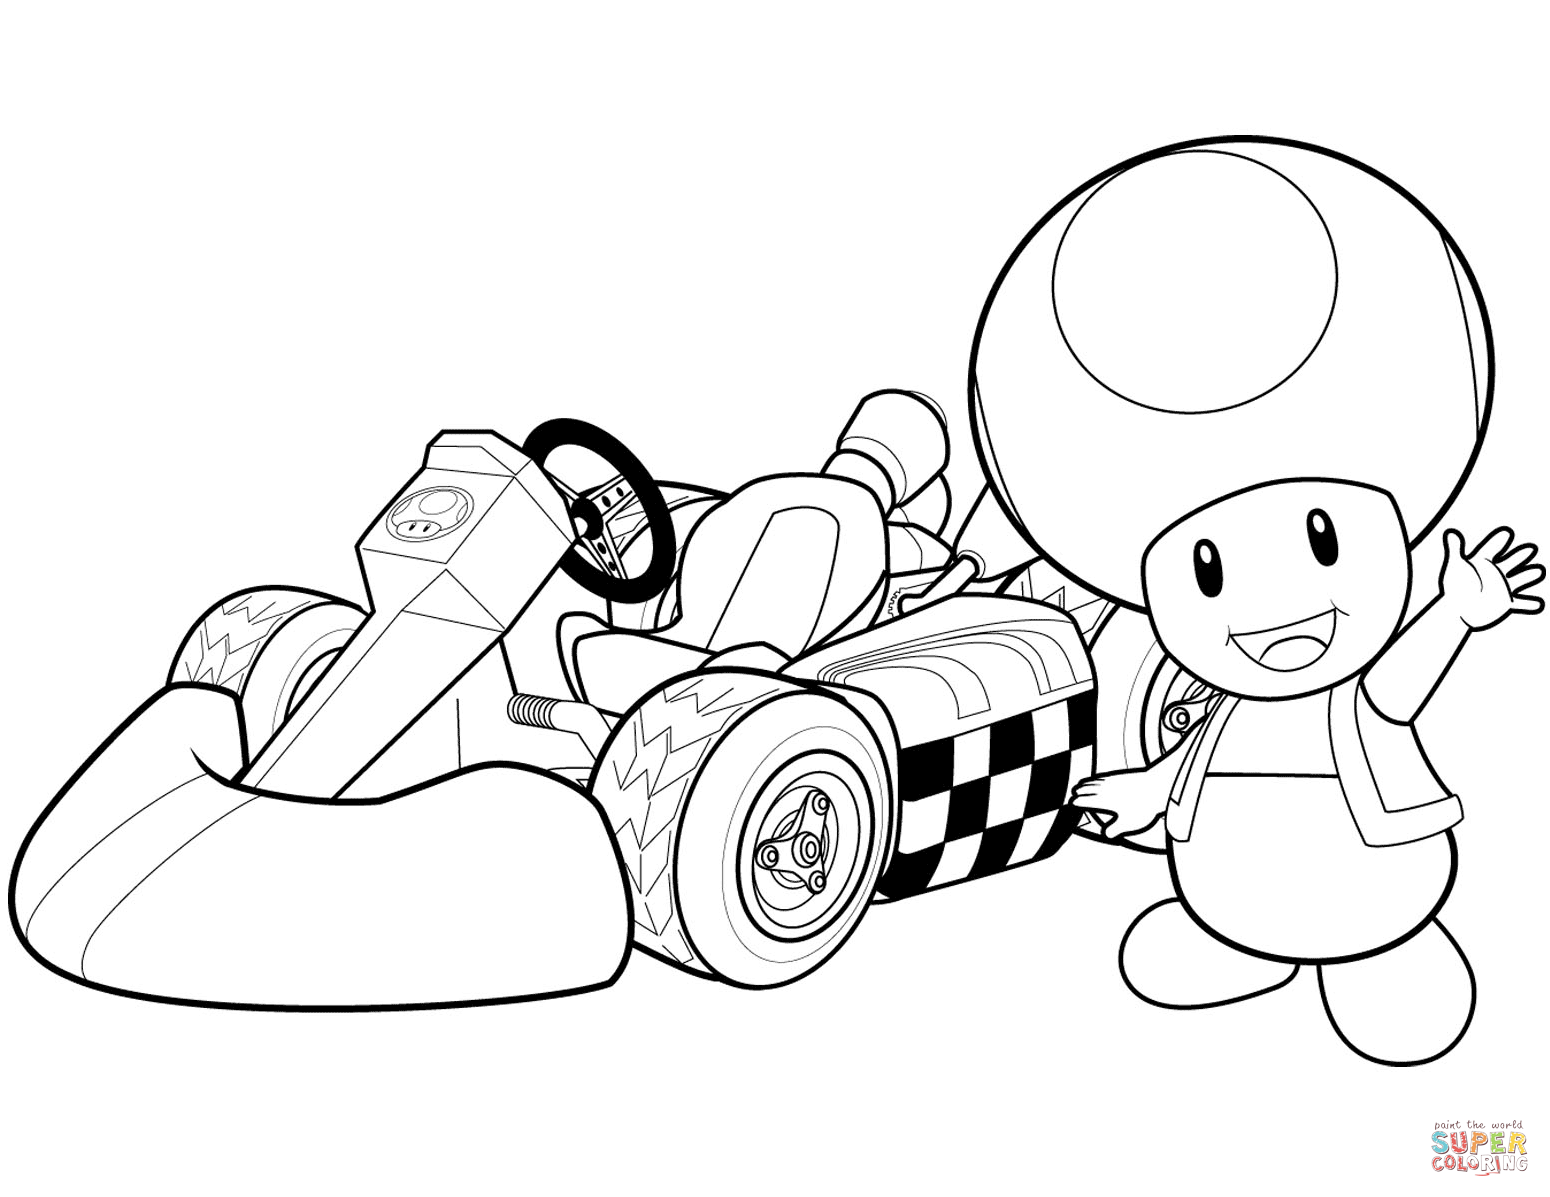 1550x1197 Coloring Pages Appealing Coloring Pages Draw A Toad Super Mario